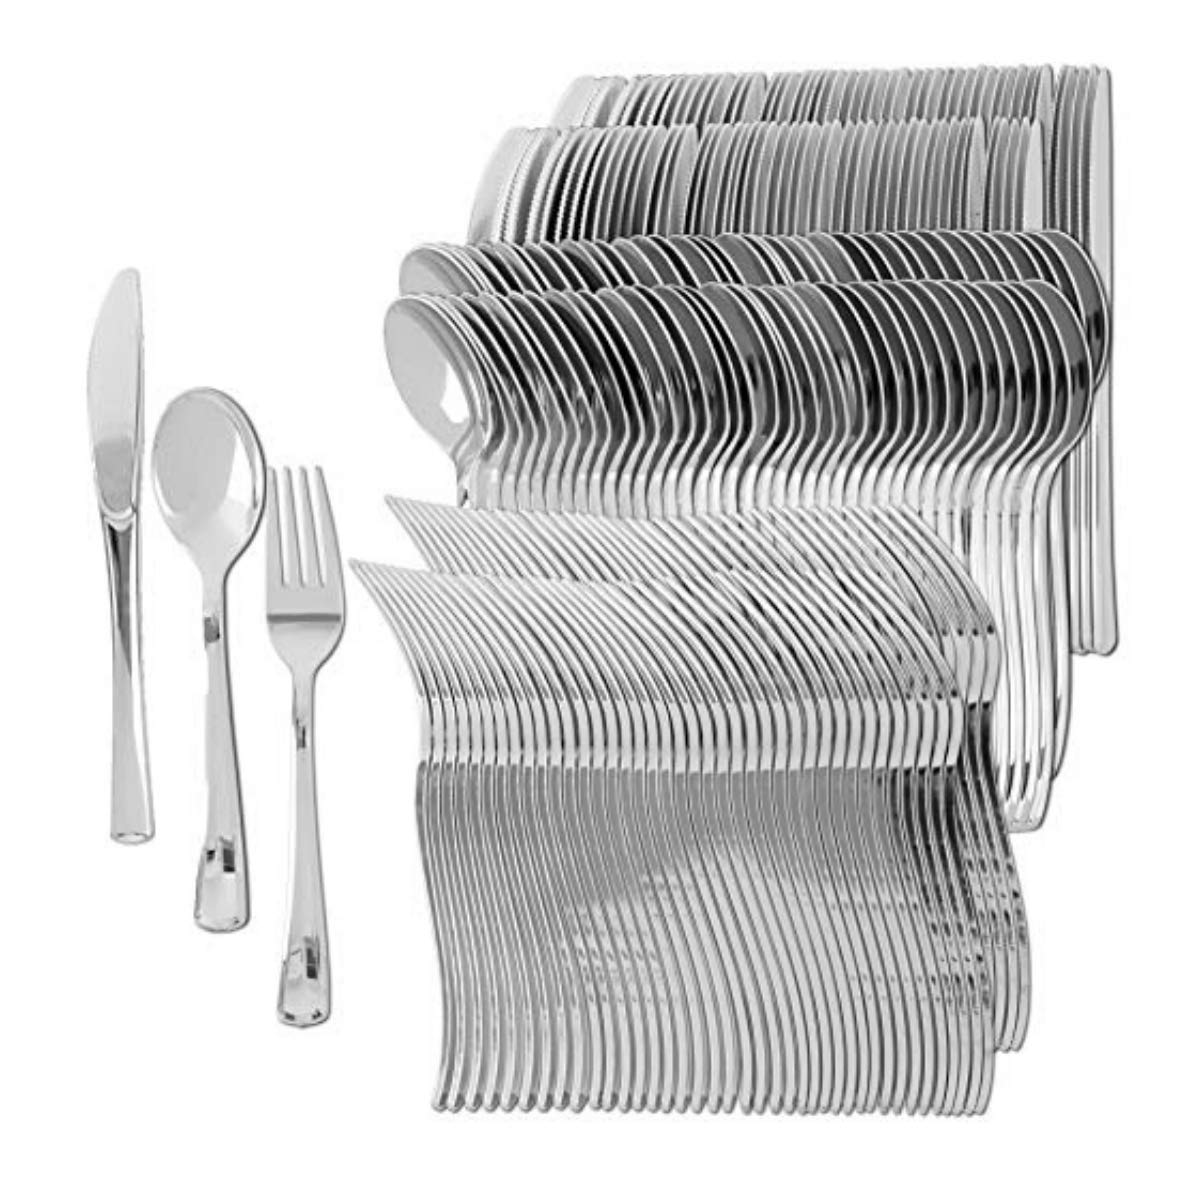 Plastic Silverware | Heavy Duty & Solid Cutlery Disposable Utensils Set | Perfect for Weddings, Buffets, Luncheon & More | 160 Forks, 80 Spoons & 80 Knives Combo Pack | 320 Count